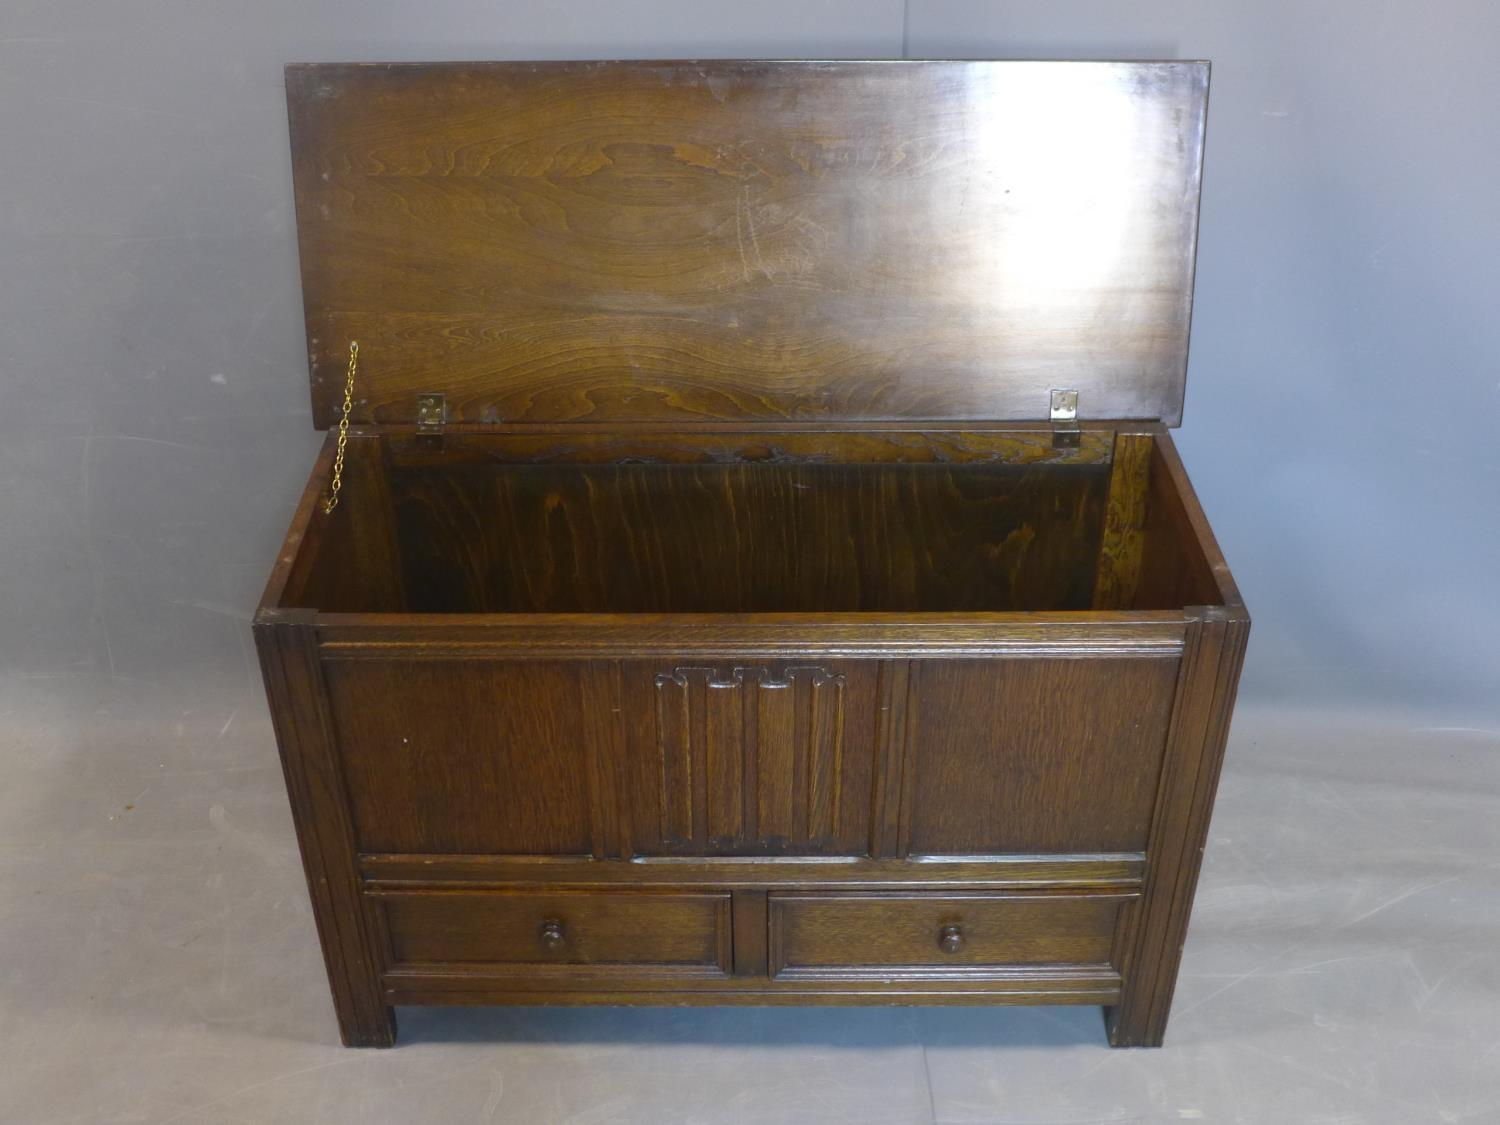 Lot 108 - An early 20th century oak mule chest, with hinged lid above two short drawers, on square reeded